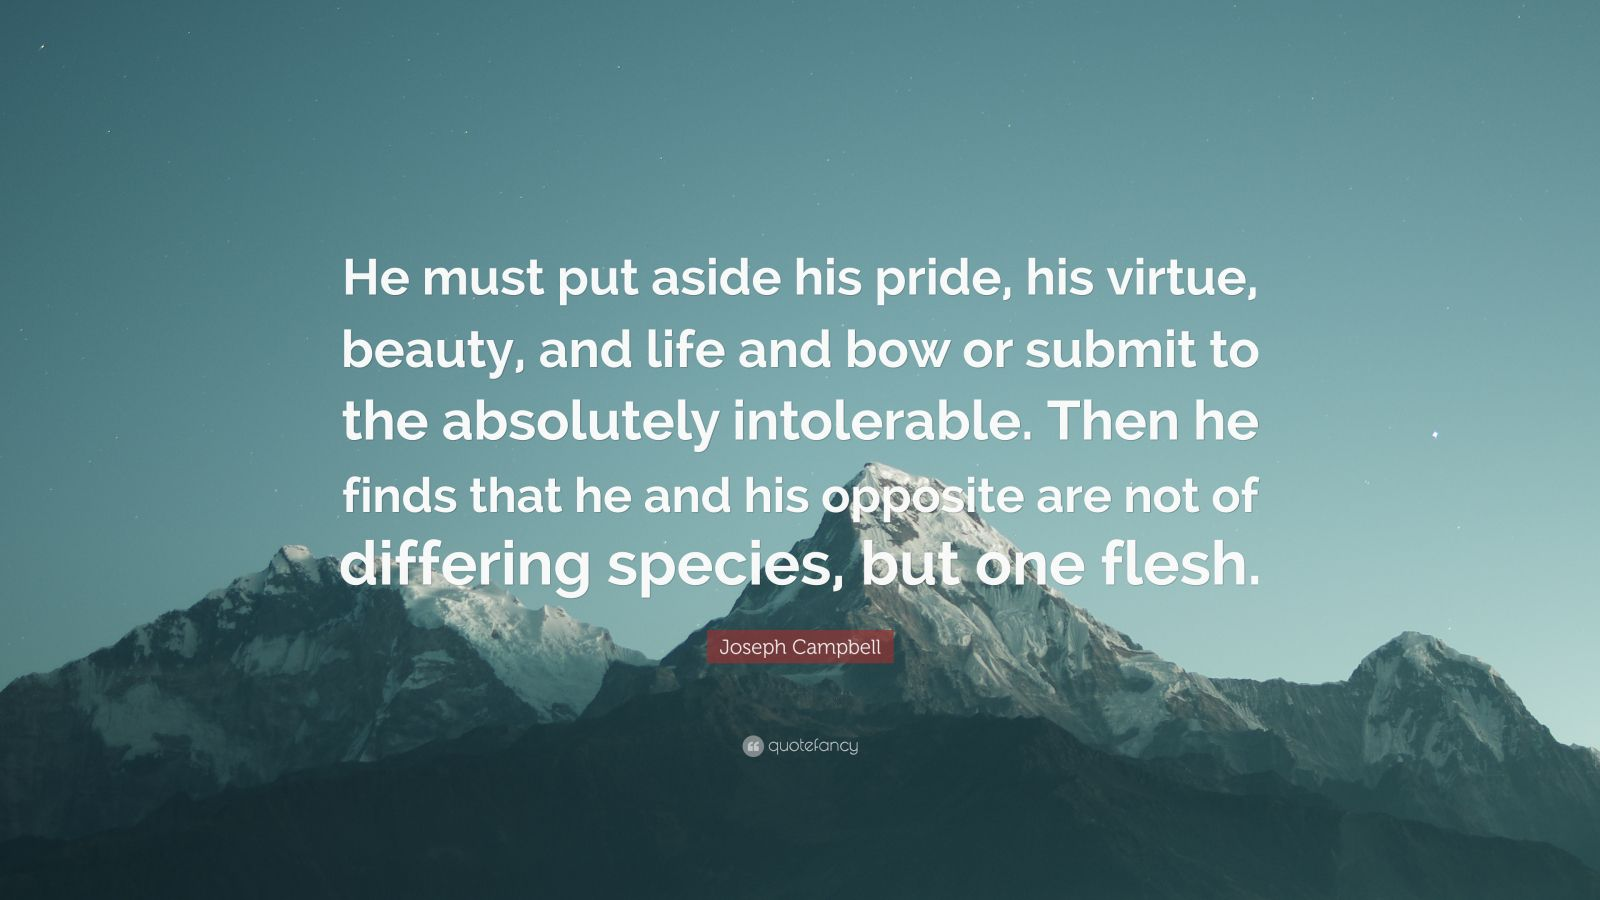 """Joseph Campbell Quote: """"He must put aside his pride, his virtue, beauty, and life and bow or submit to the absolutely intolerable. Then he finds that he and his opposite are not of differing species, but one flesh."""""""